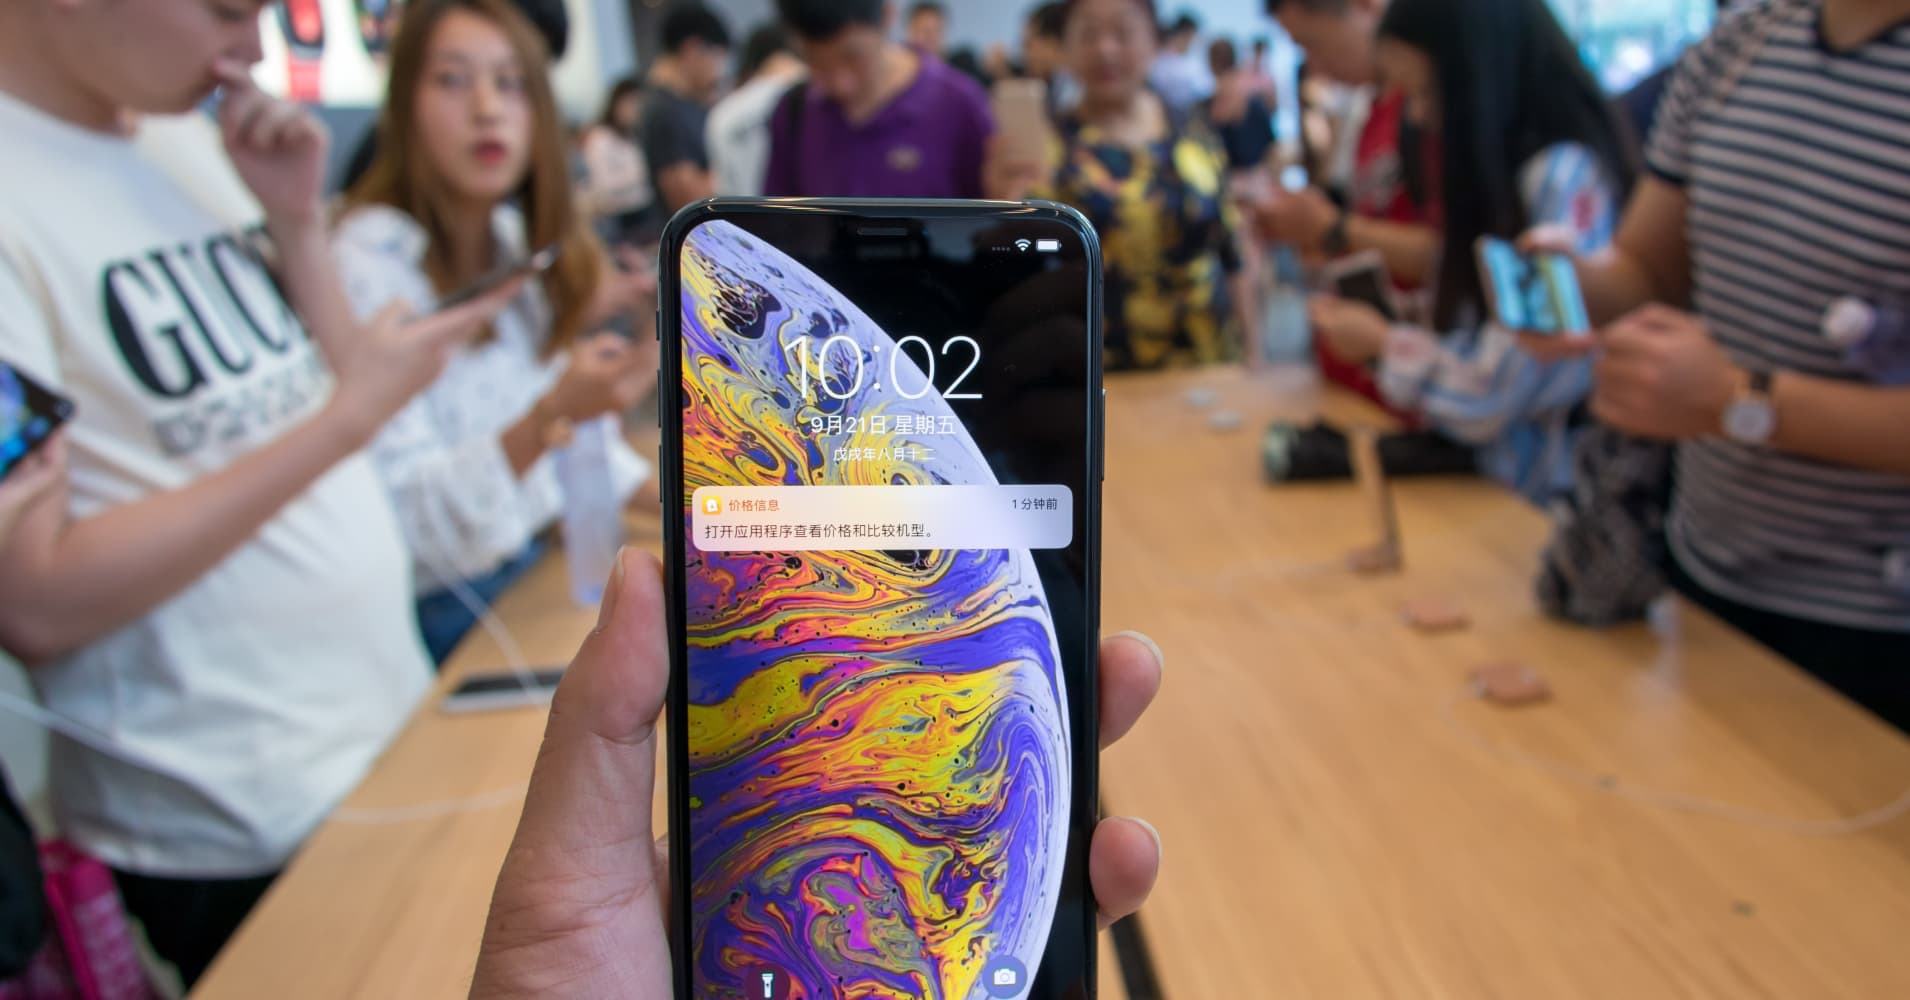 Retailers are slashing iPhone prices across China as consumers say the phones aren't worth the cost